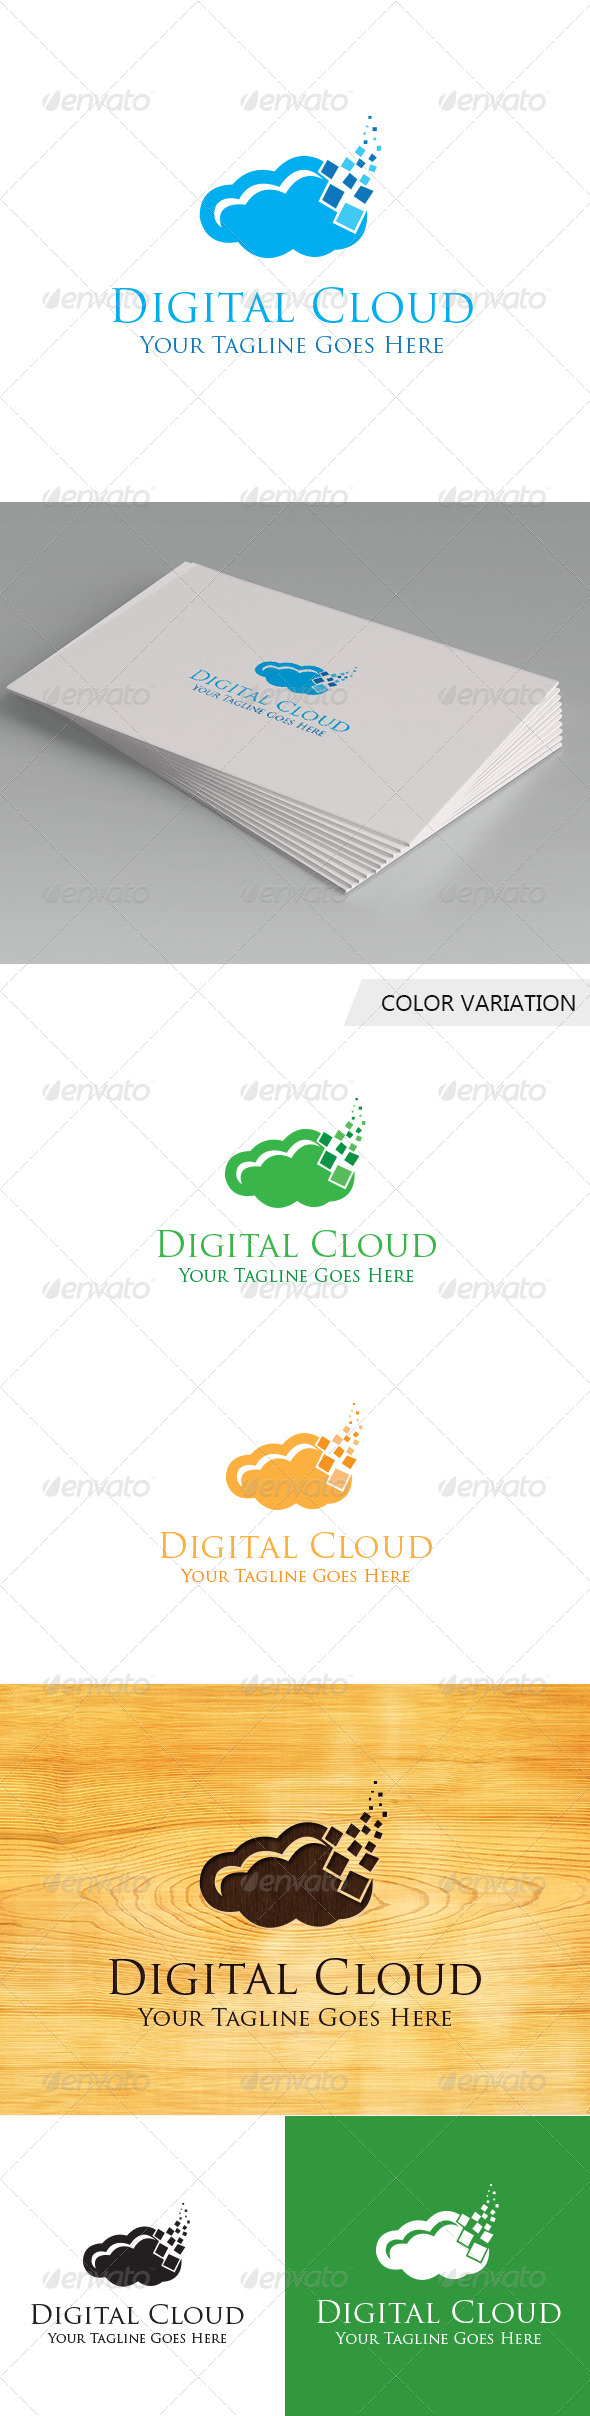 GraphicRiver Digital Cloud Logo Template 5687122